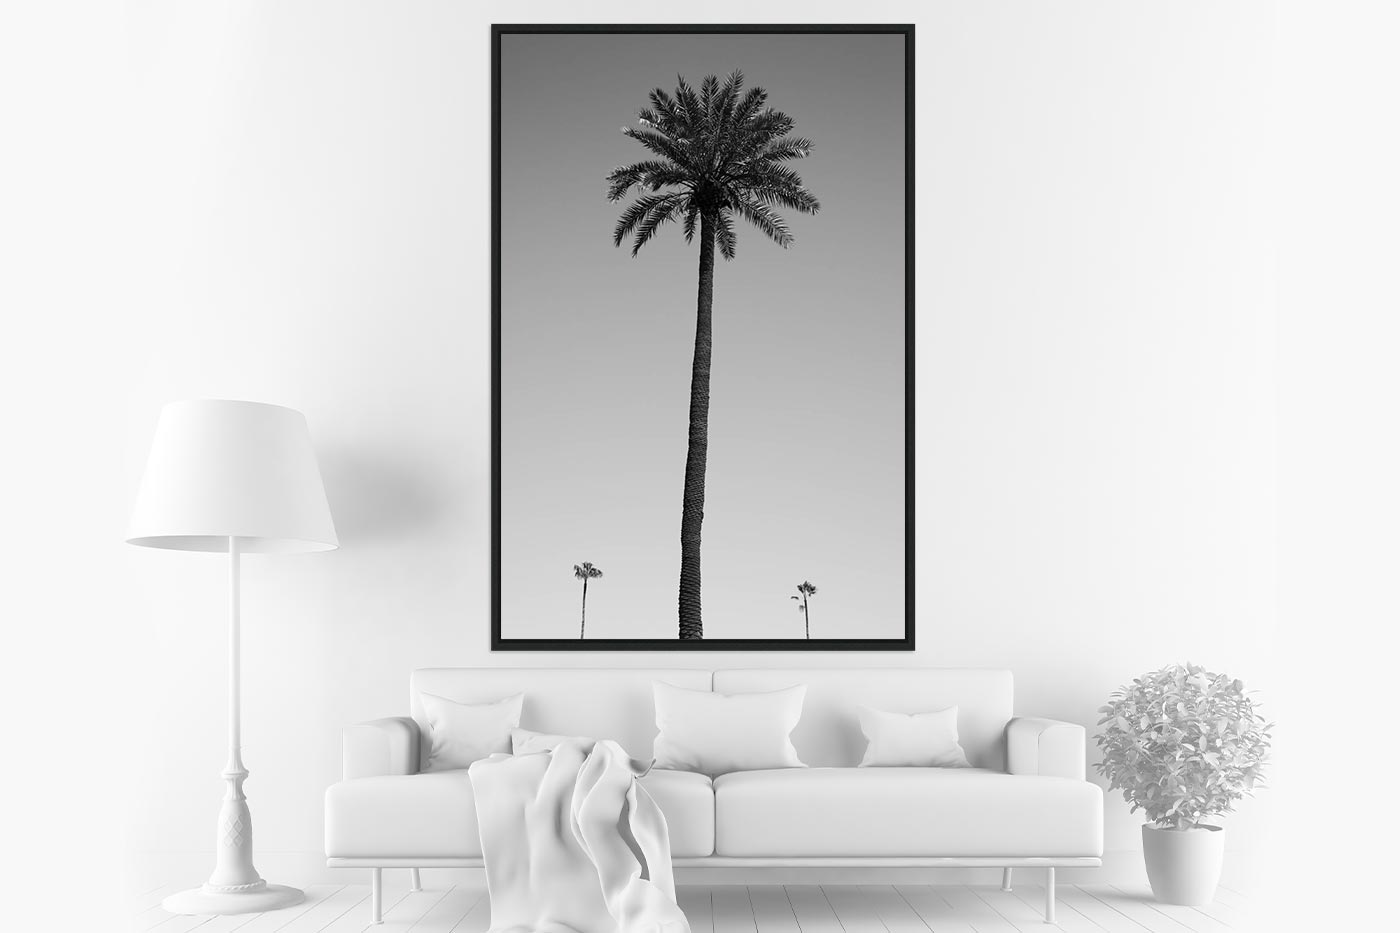 Caisse americaine 80x120 Three palm trees